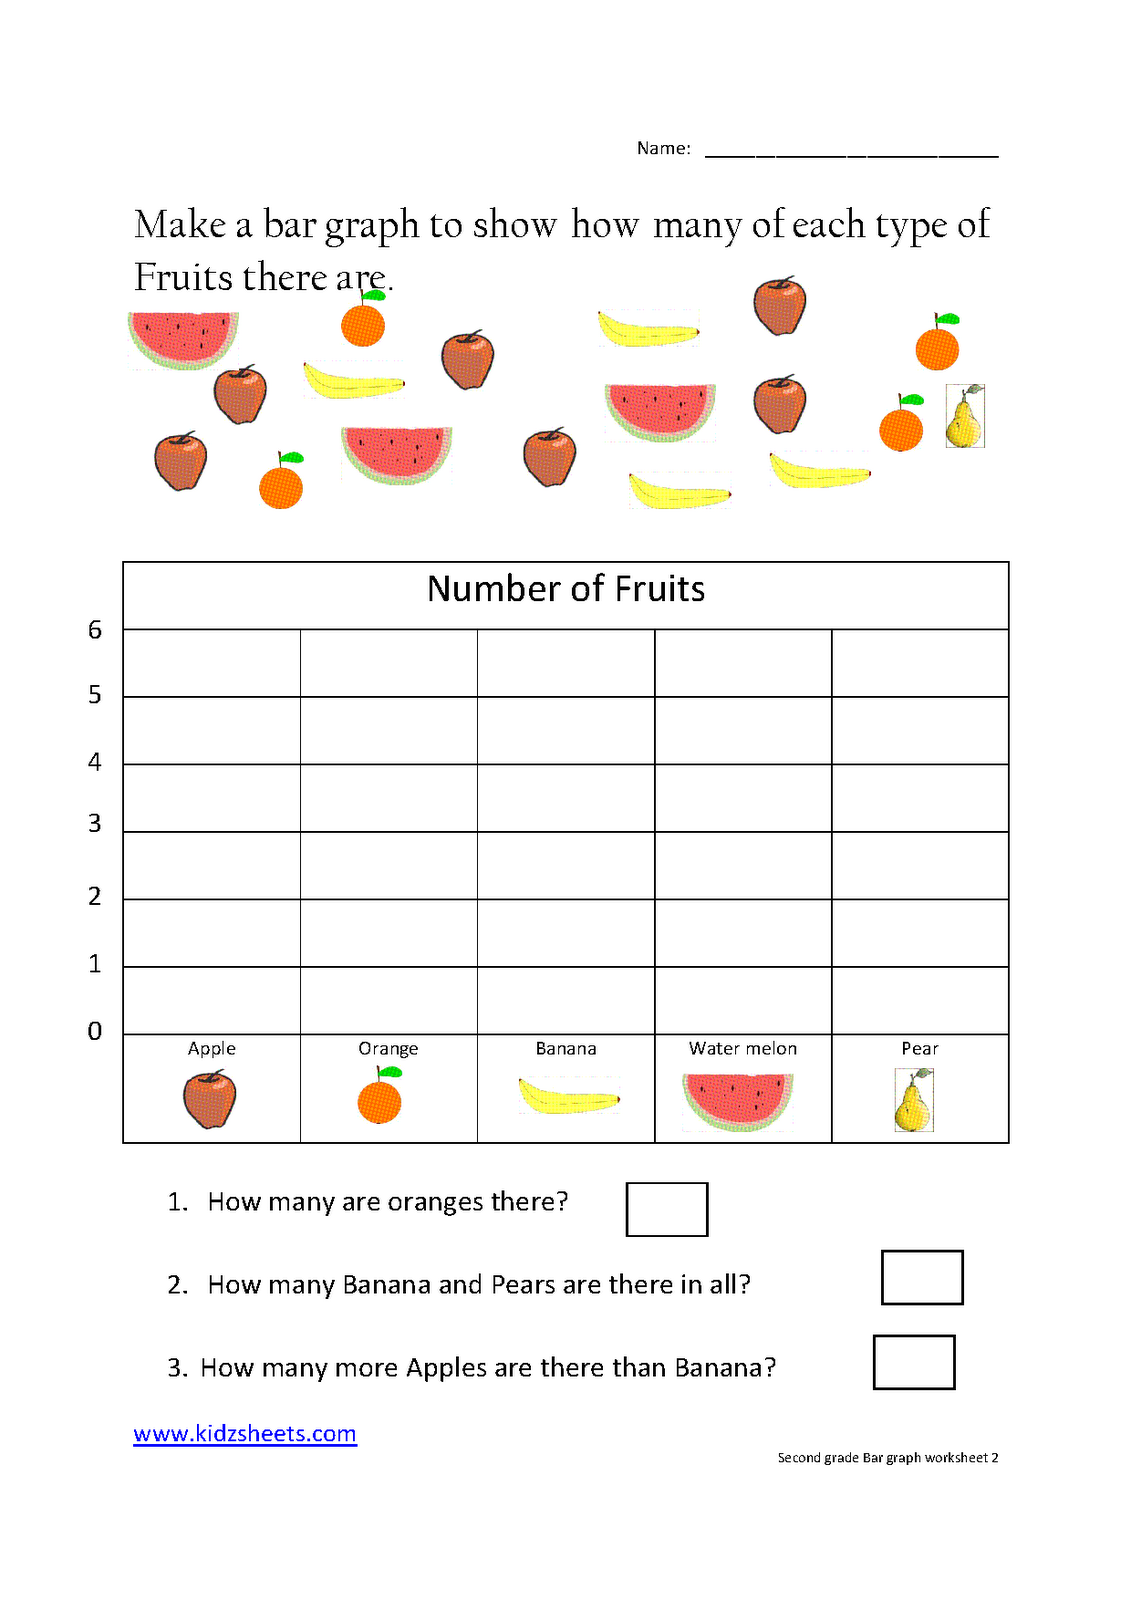 hight resolution of Kidz Worksheets: Second Grade Bar Graph Worksheet2